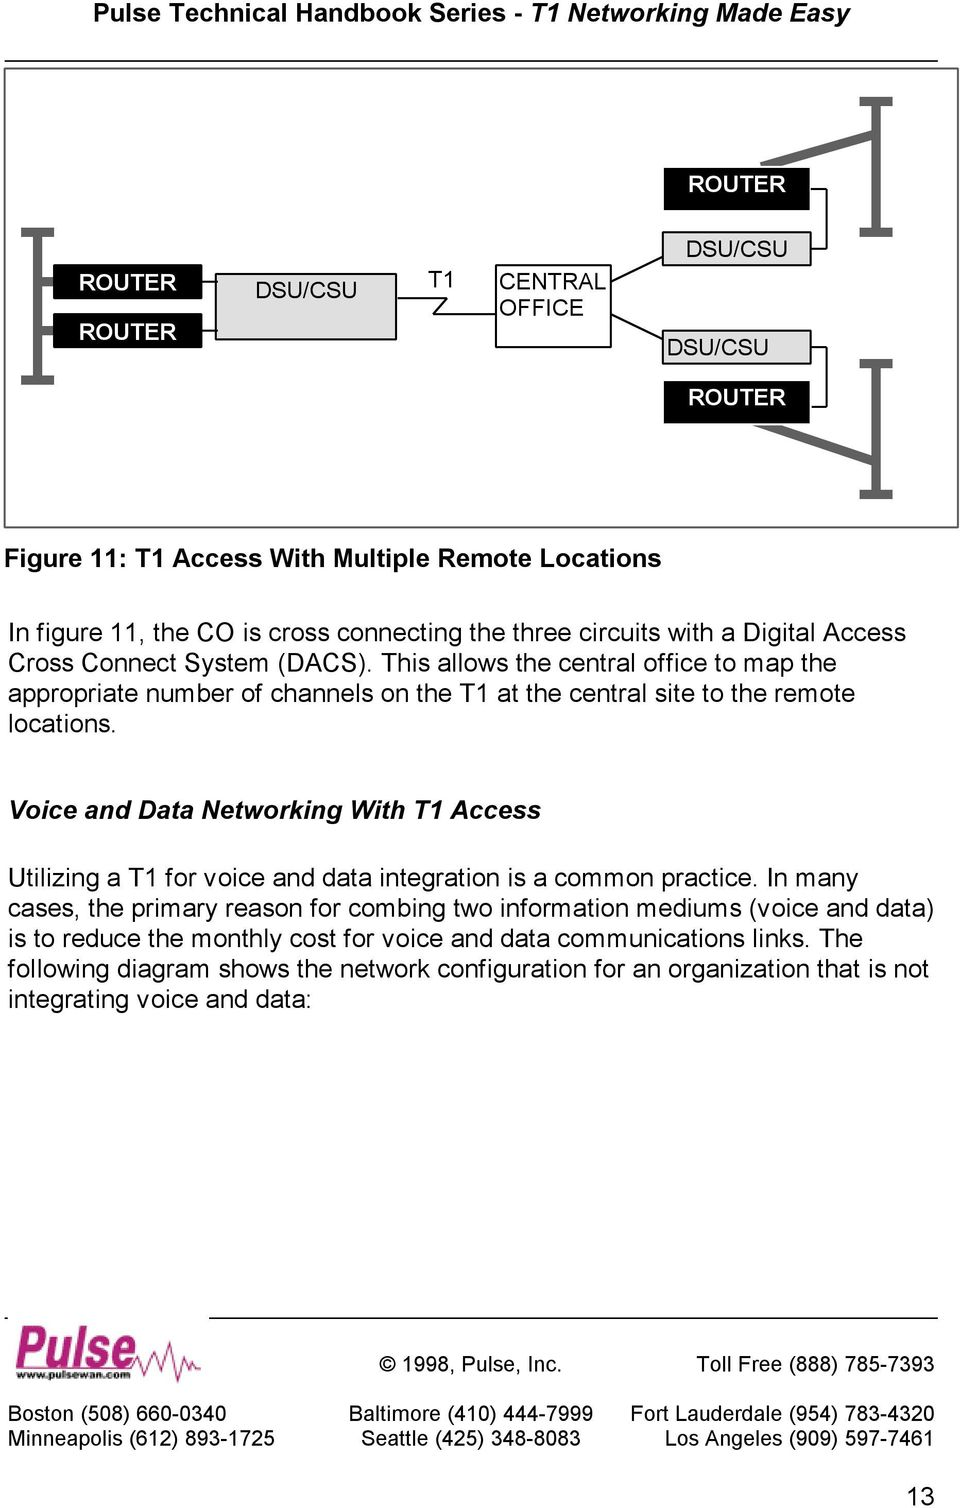 Voice and Data Networking With T1 Access Utilizing a T1 for voice and data integration is a common practice.